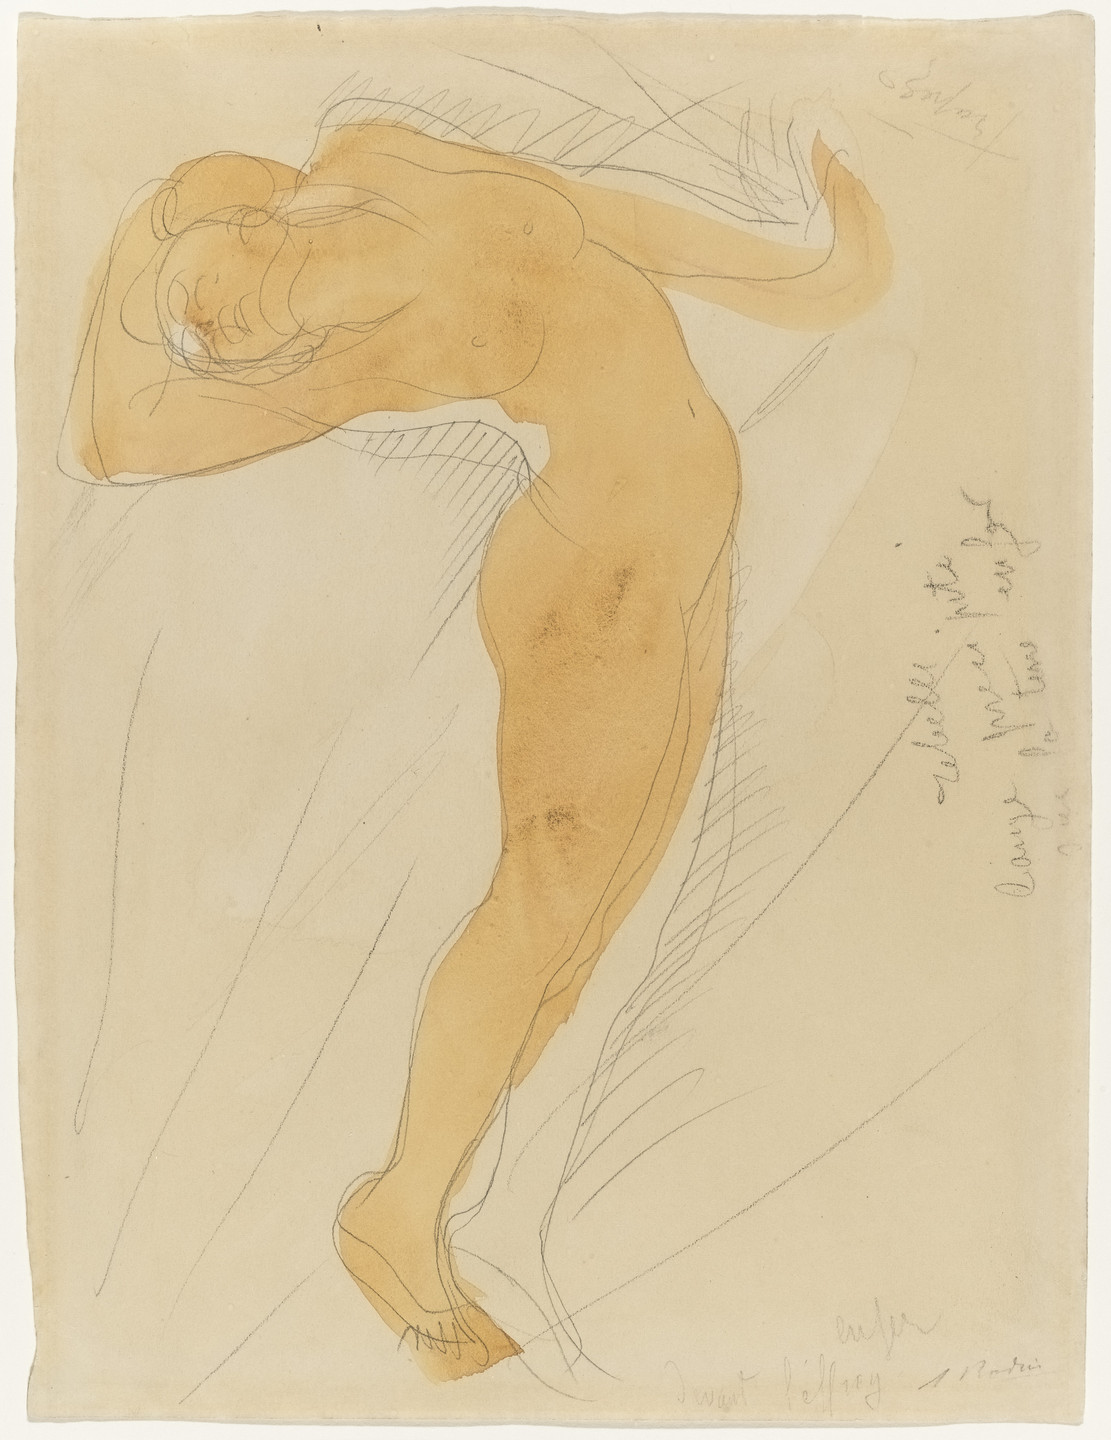 Auguste Rodin. Stretching Figure. (c. 1900-1906)